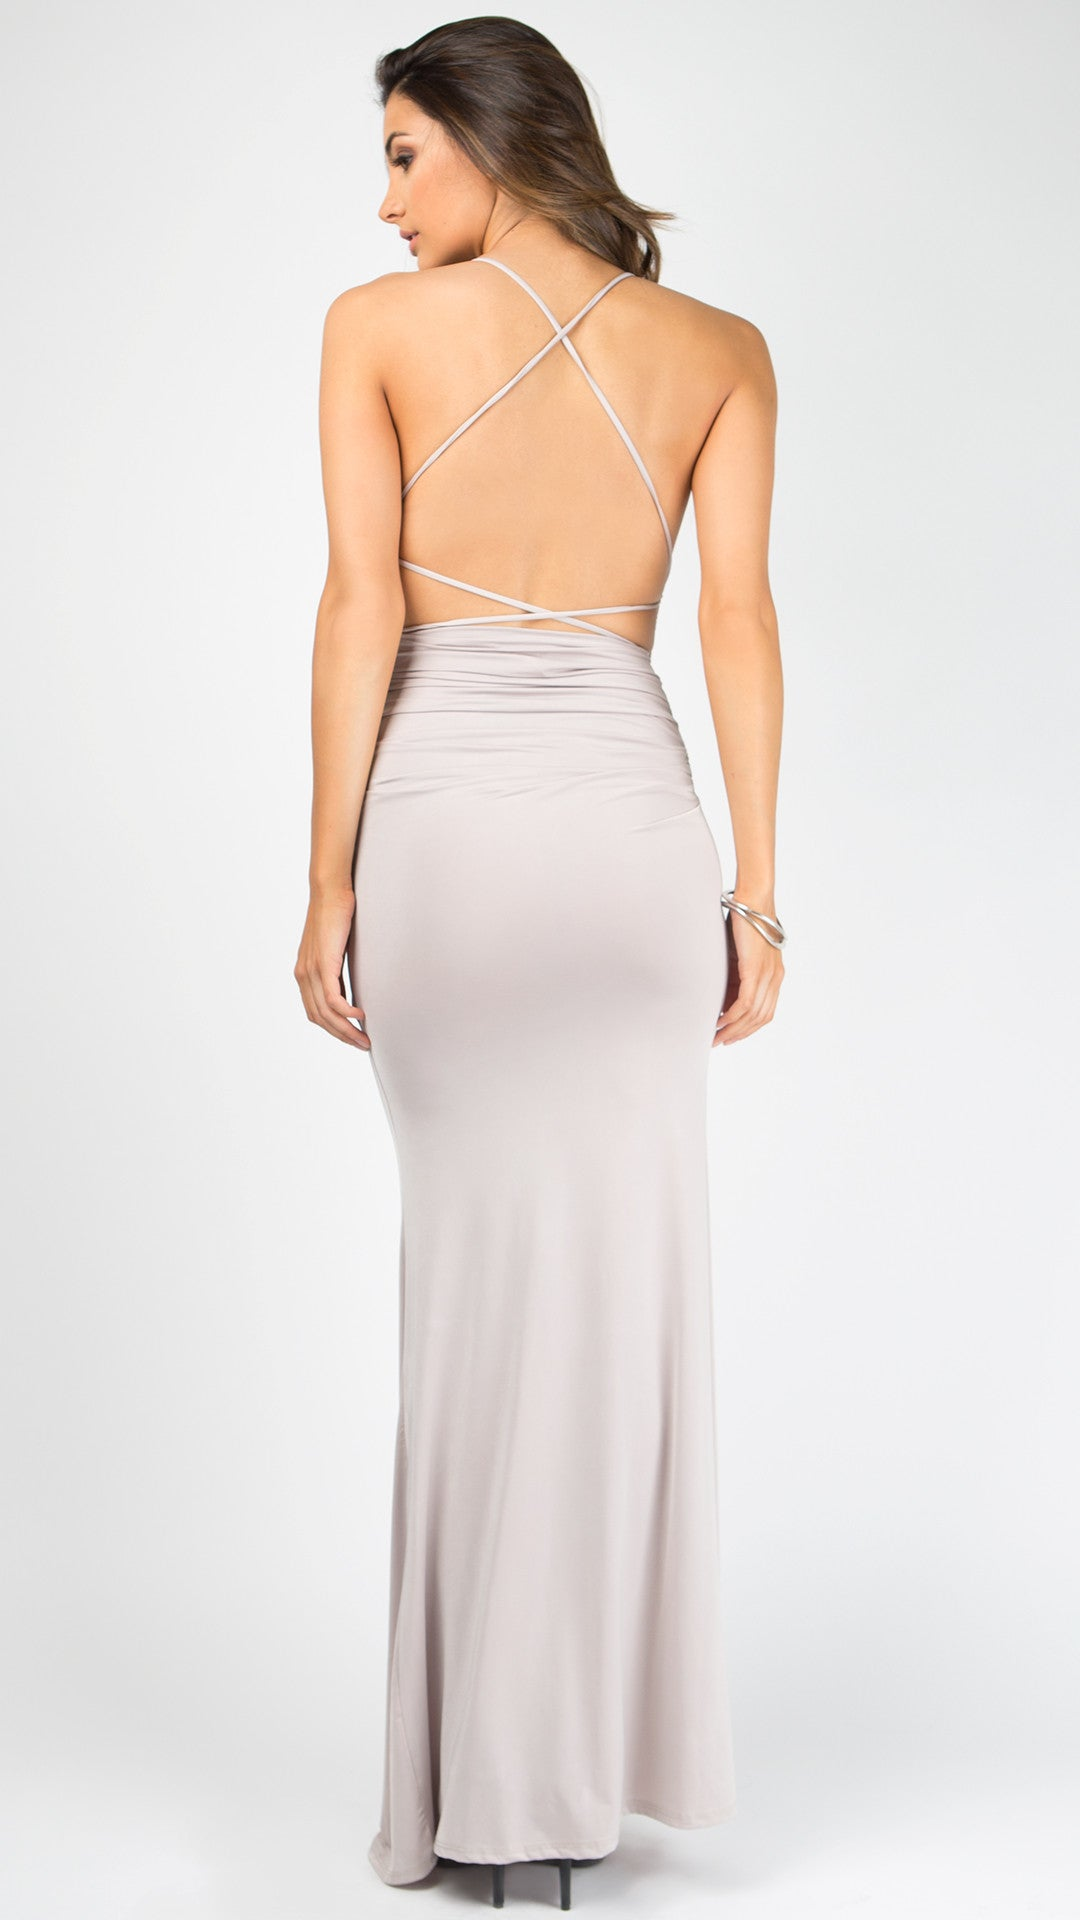 0e1b0e59b0 Strappy Back Thin Strap Maxi Dress - ANGL